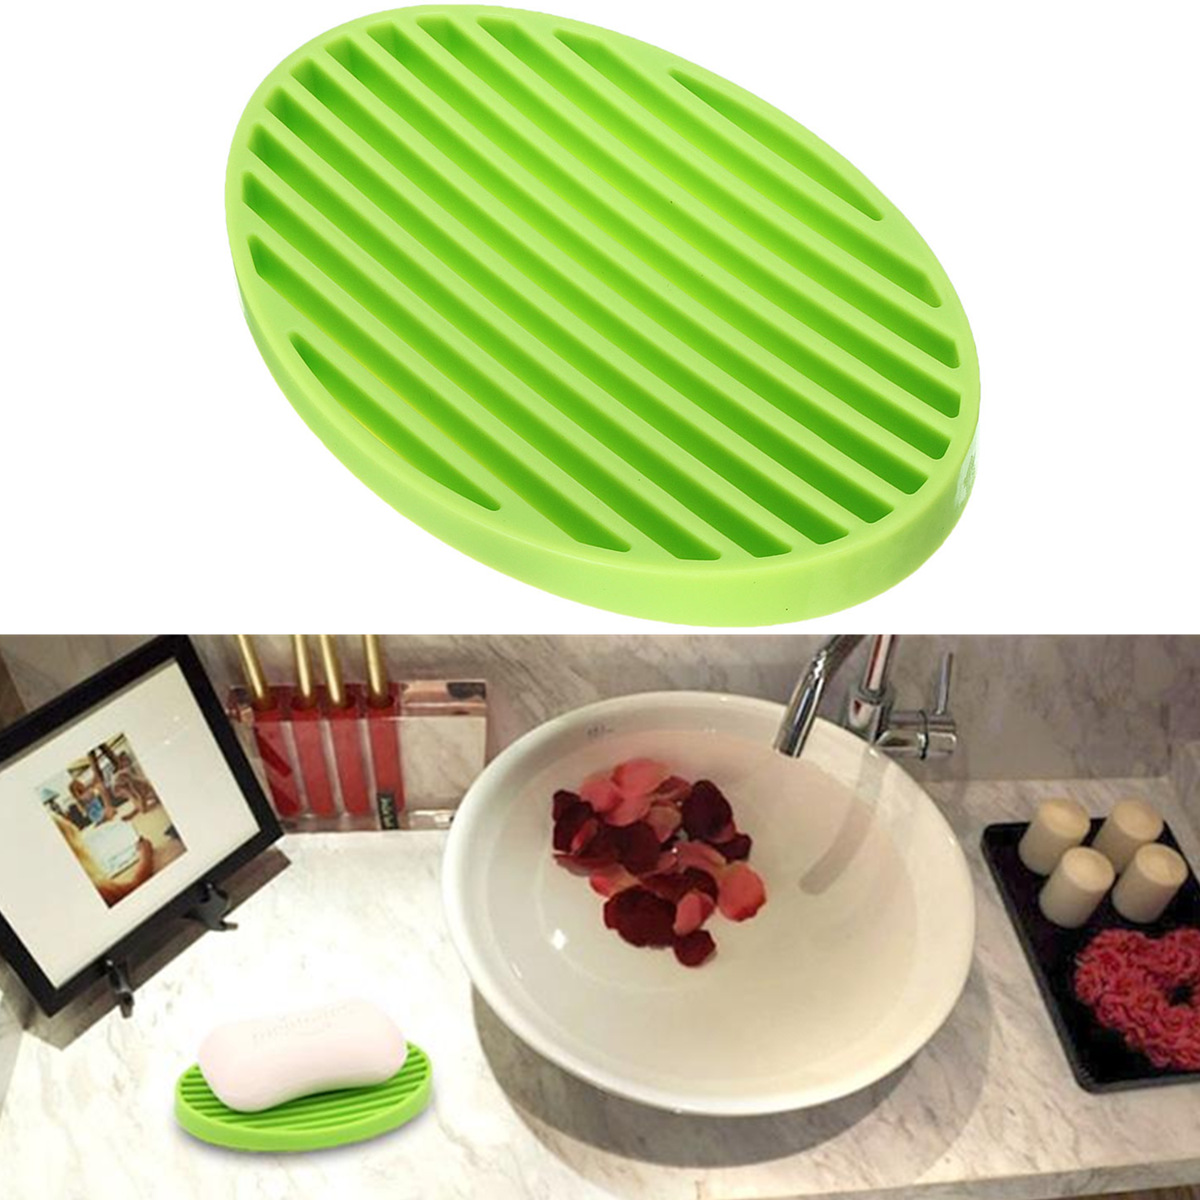 Practical Silicone Flexible Soap Dish Plate Holder Placement Soapbox Bathroom